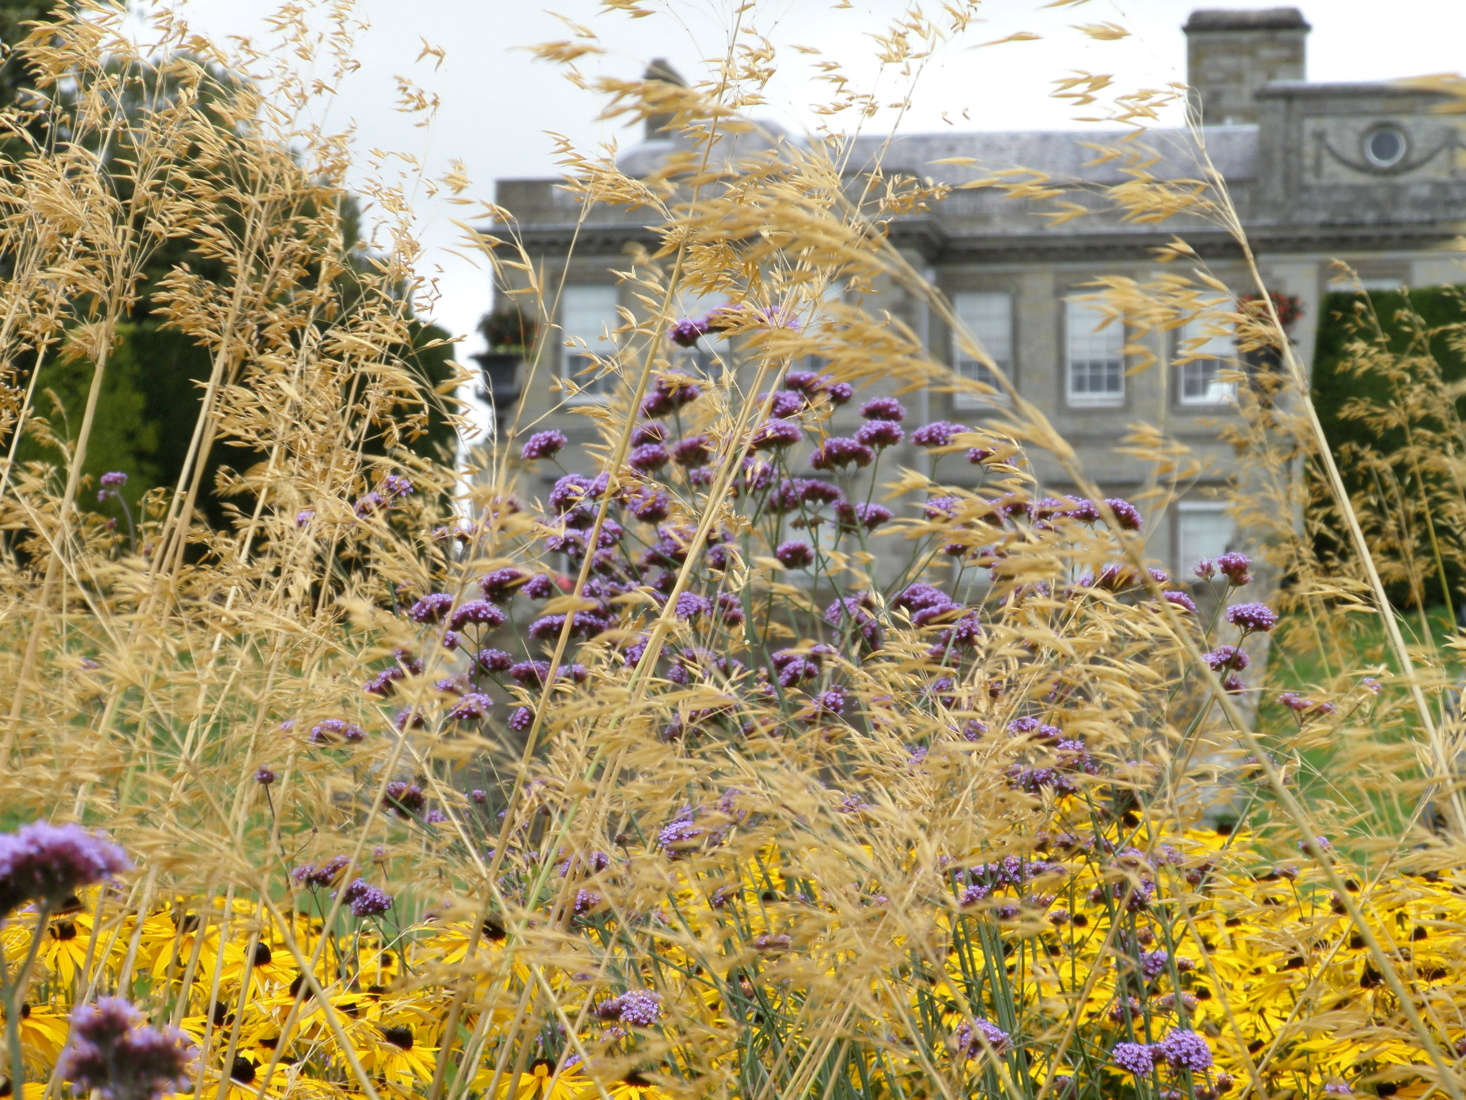 Yellow and purple: a happy combination. Here black-eyed Susans mingle with Verbena bonariensis against a backdrop of Stipa. Photograph by Amanda Slater via Flickr.